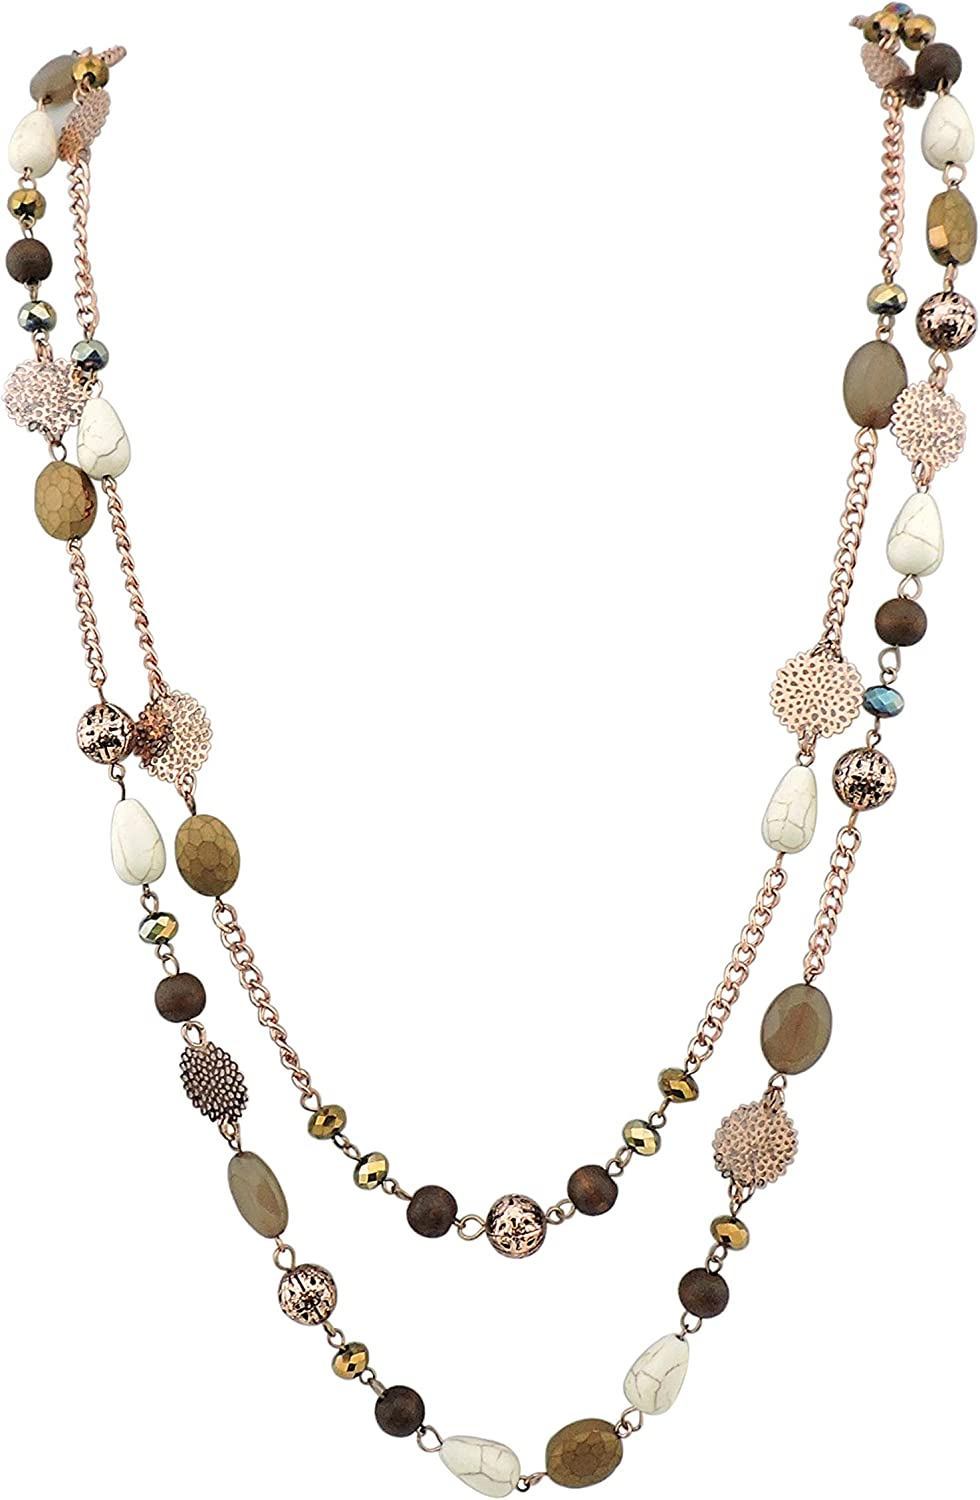 BOCAR 14K Gold Plated Link Chain 2 Layer Crystal Wood Acrylic Colorful Women Party Long Necklace Gift